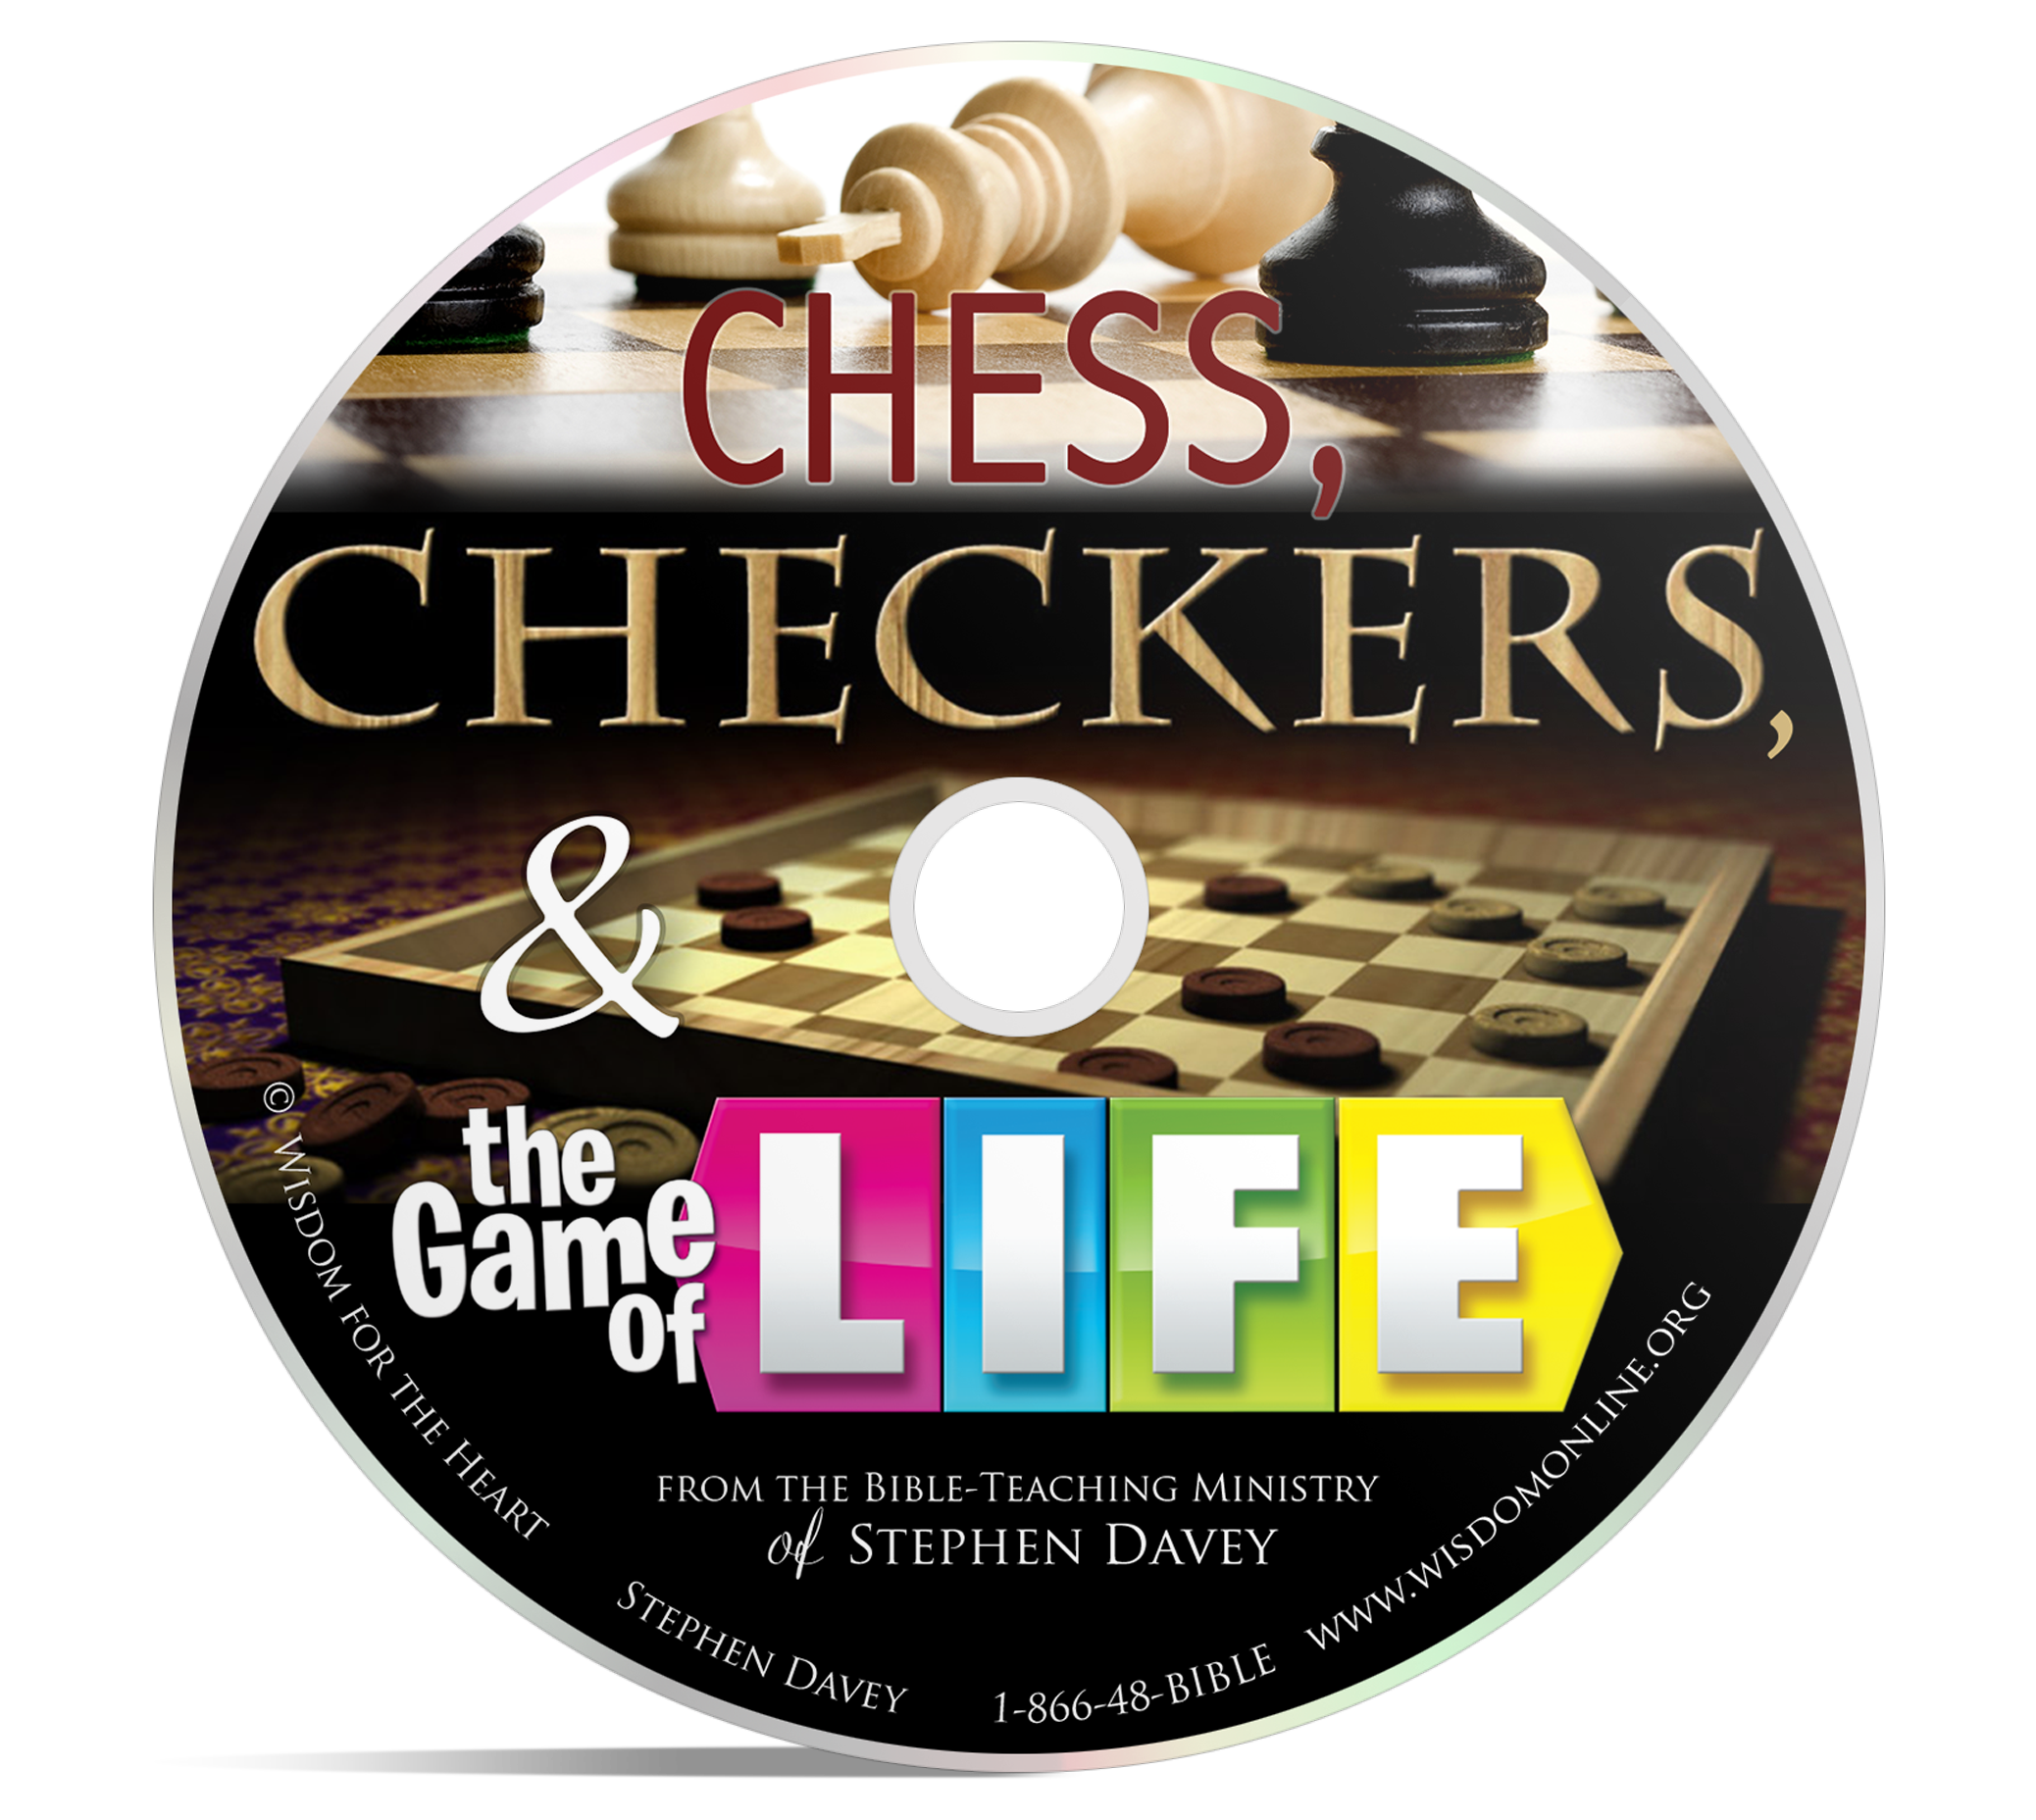 Chess, Checkers & the Game of Life